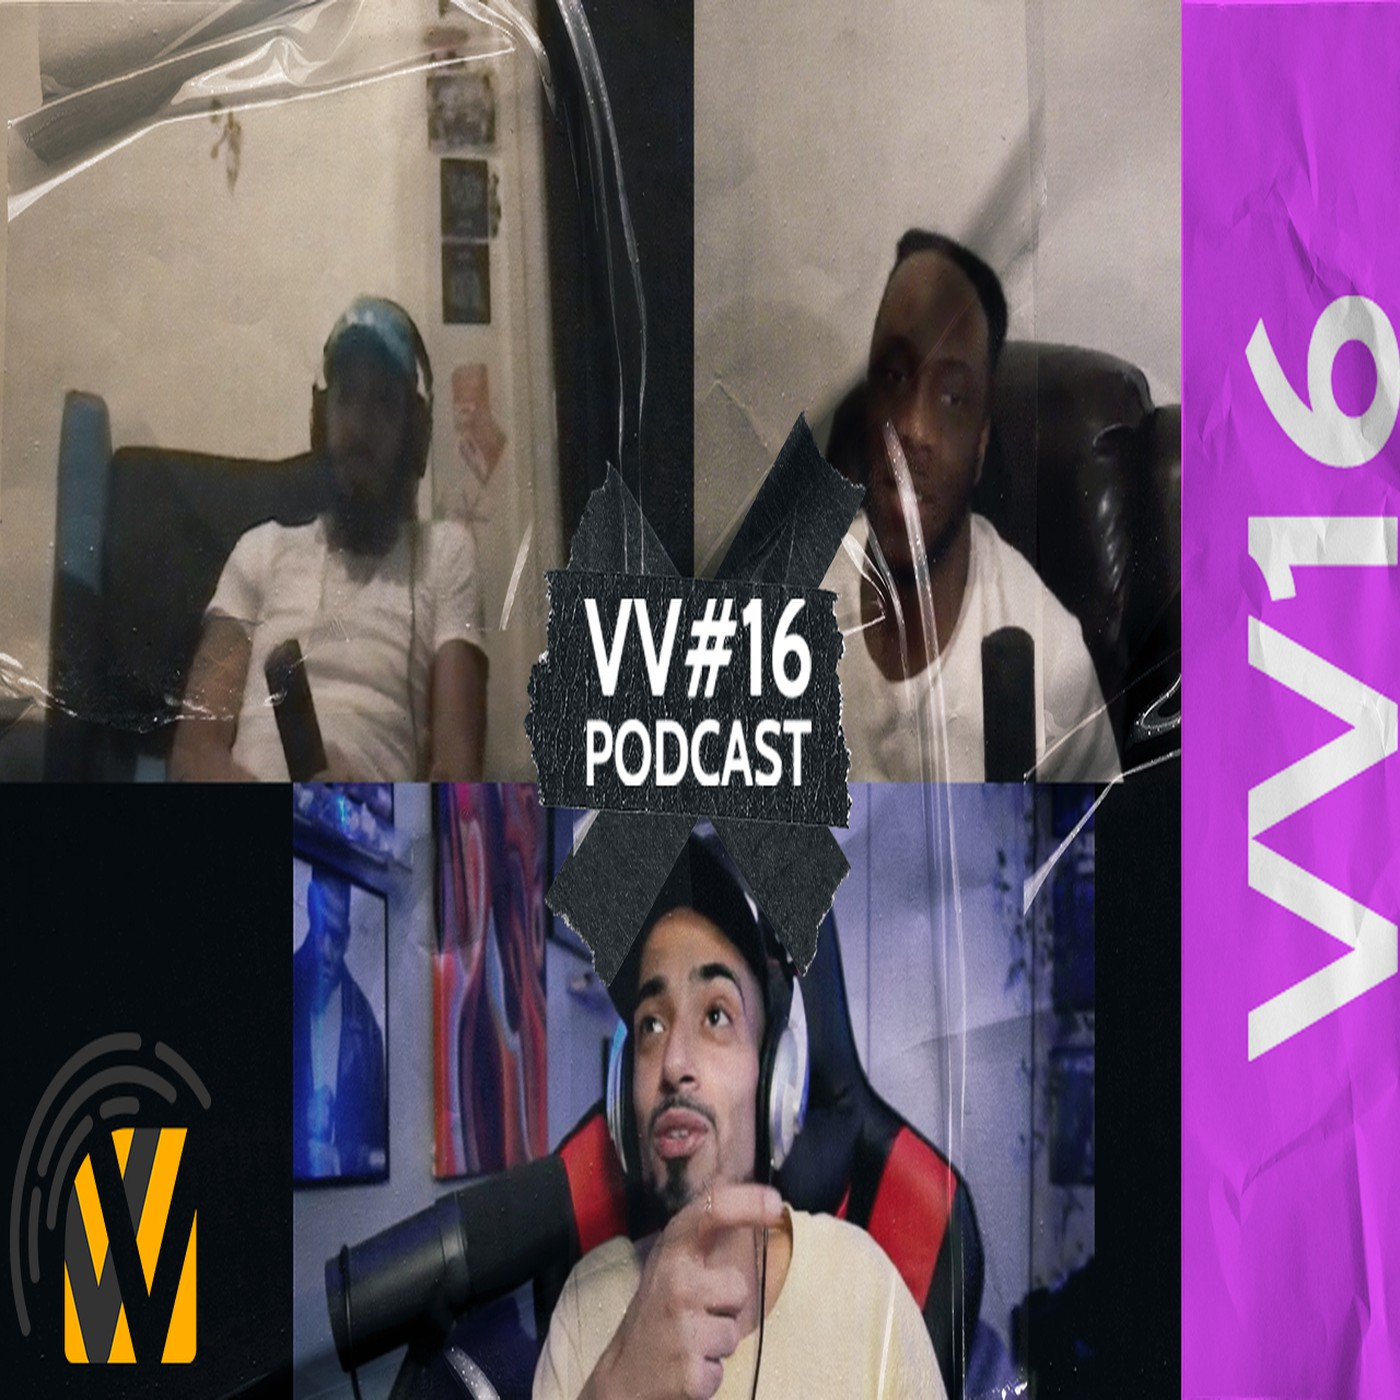 The VV Podcast